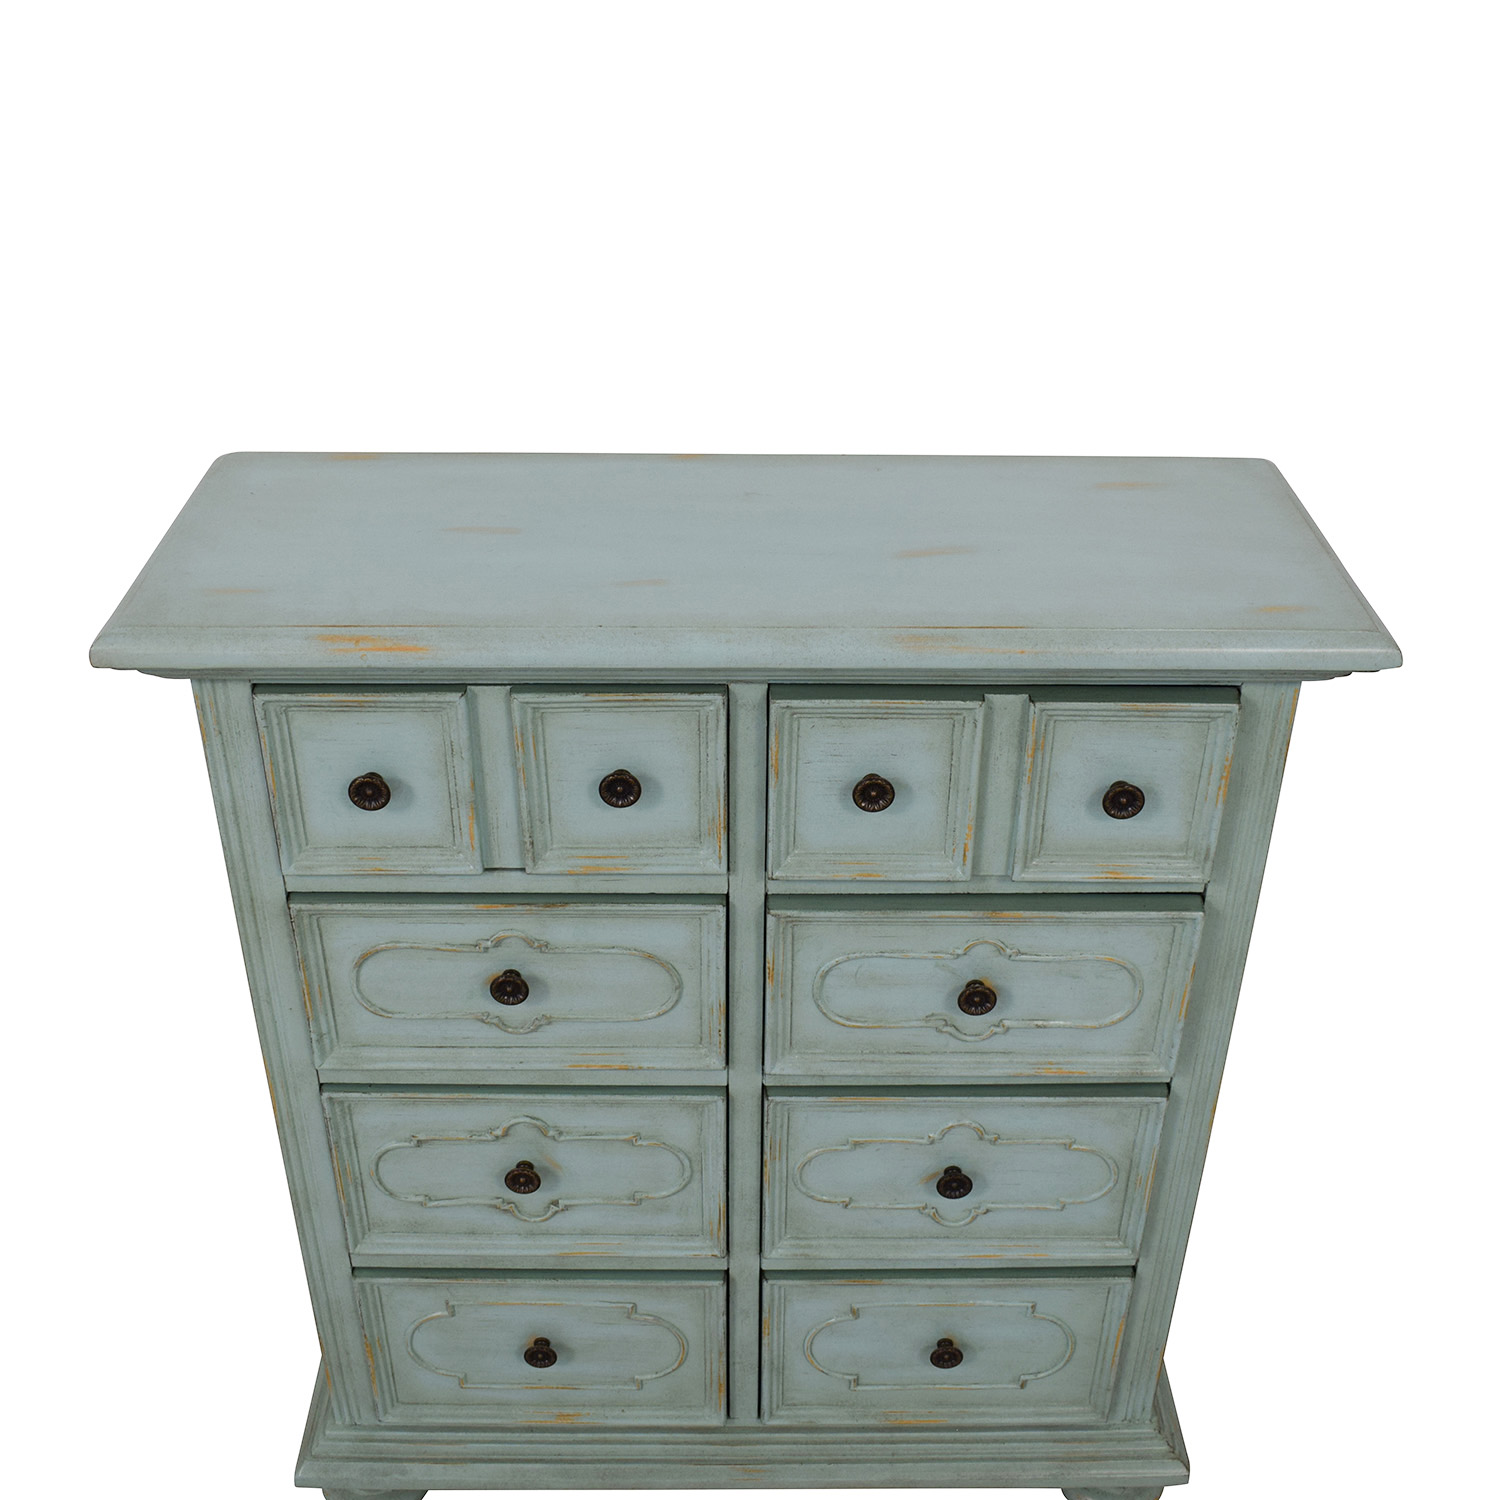 buy Joss & Main Distressed Dresser Joss & Main Dressers